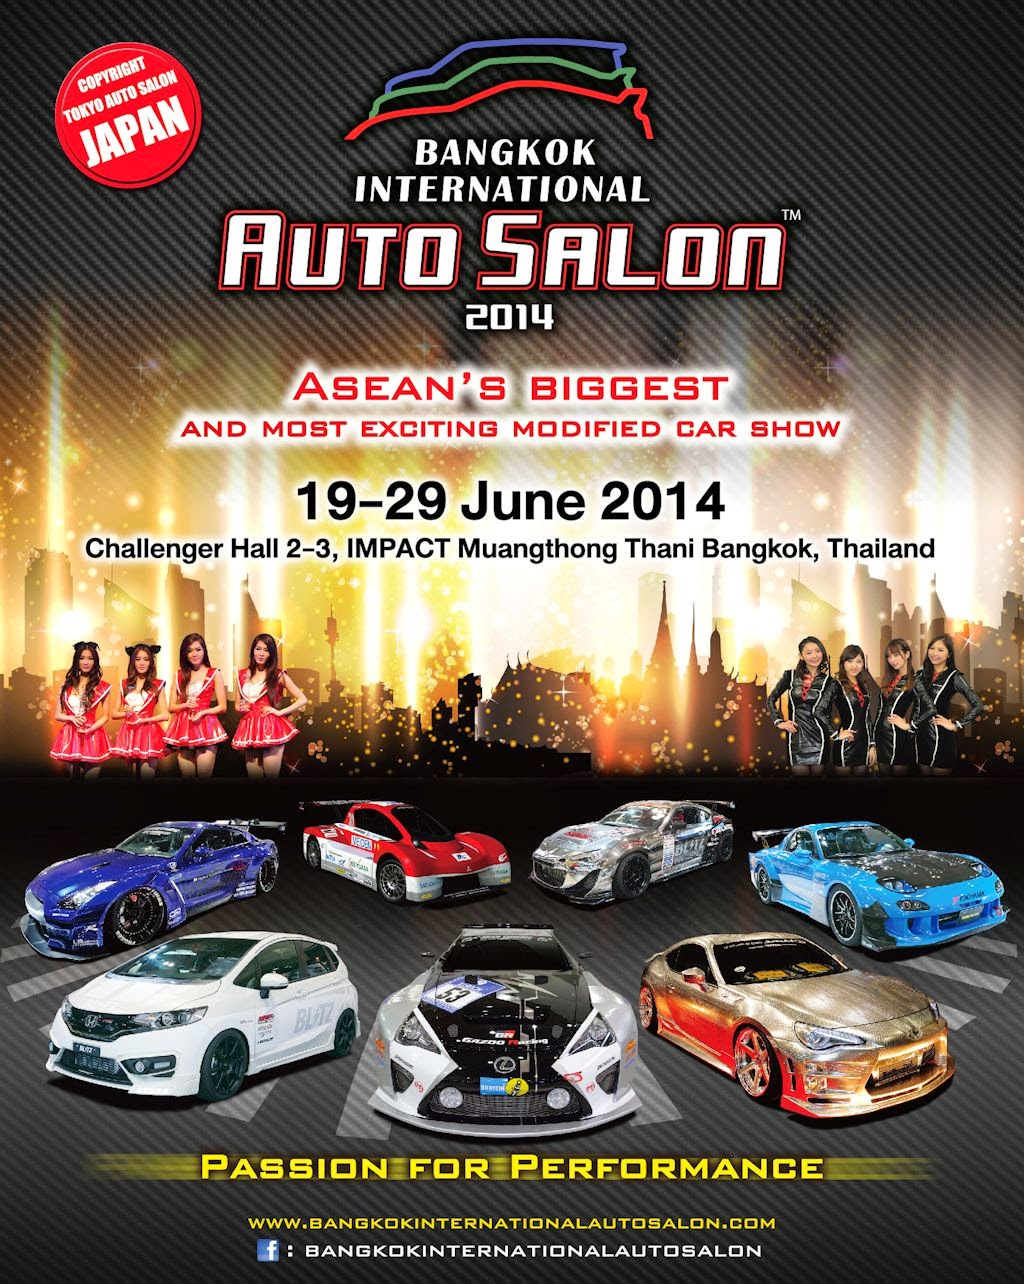 The bangkok international auto salon 2014 the largest custom car and accessories show in asean enters its third successful year with the passion for